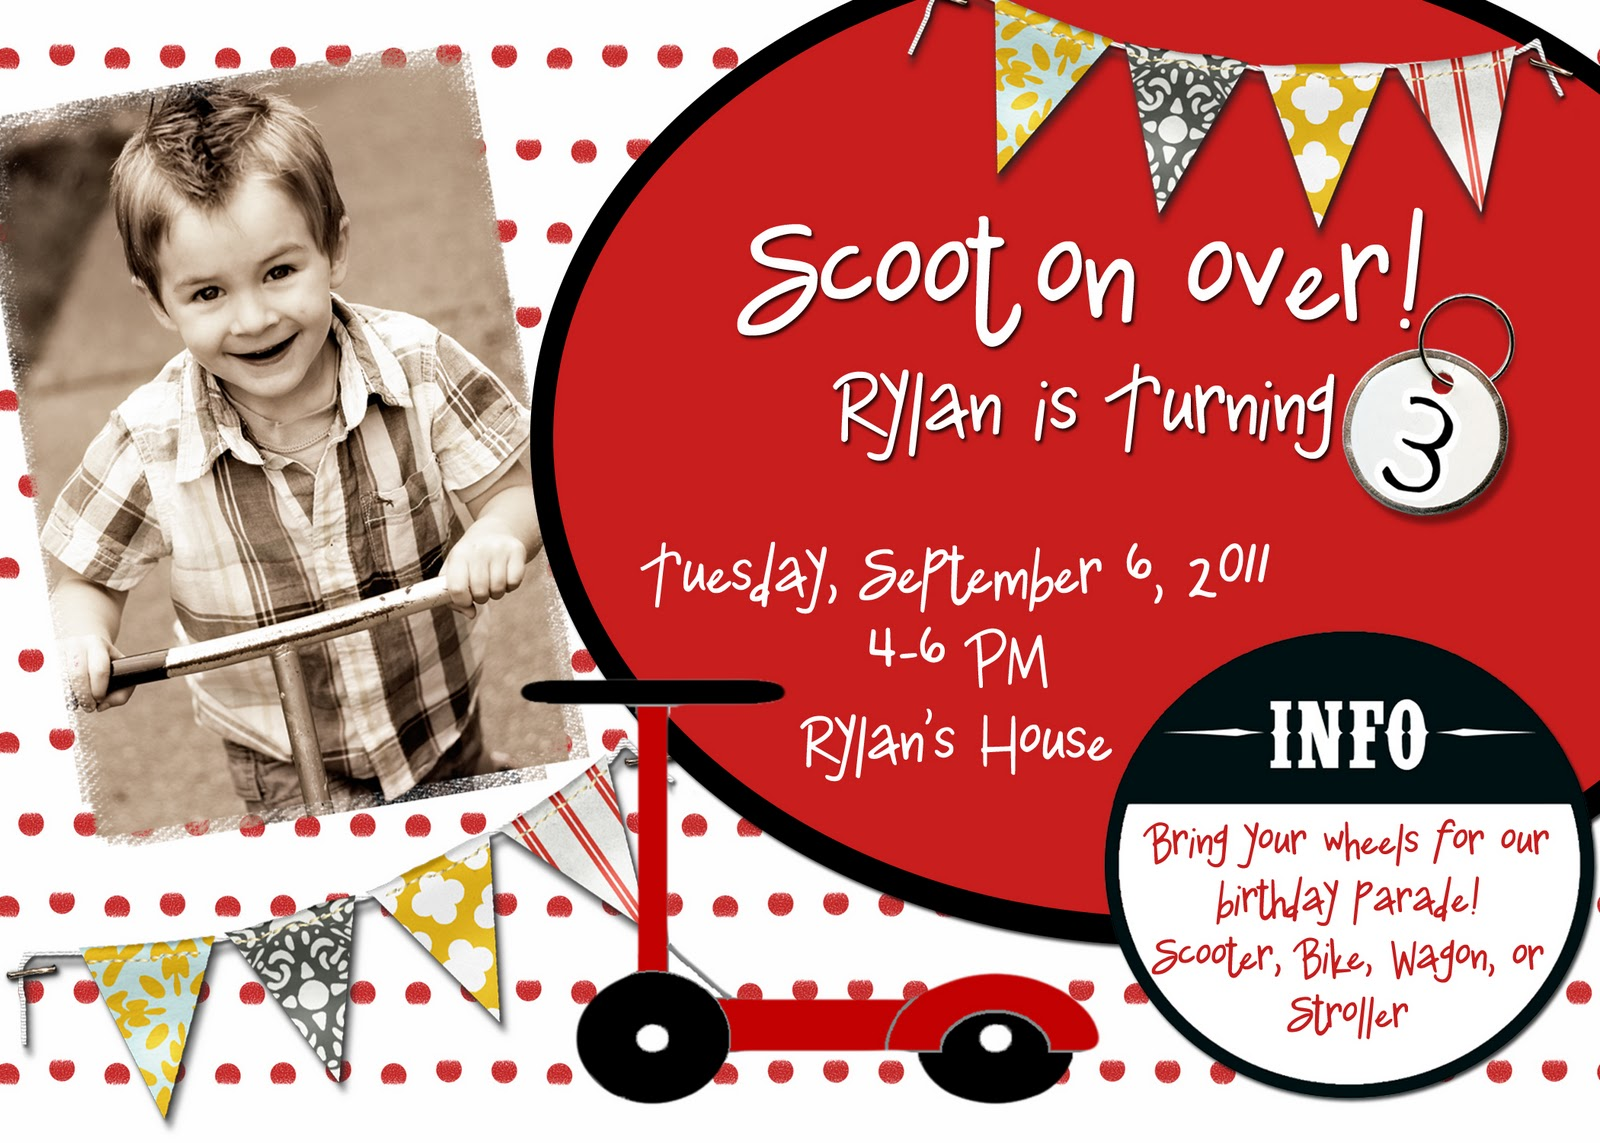 Ry+Scooter+Party+Invite.jpg 1,600×1,143 pixels | Brooklyn\'s Birthday ...